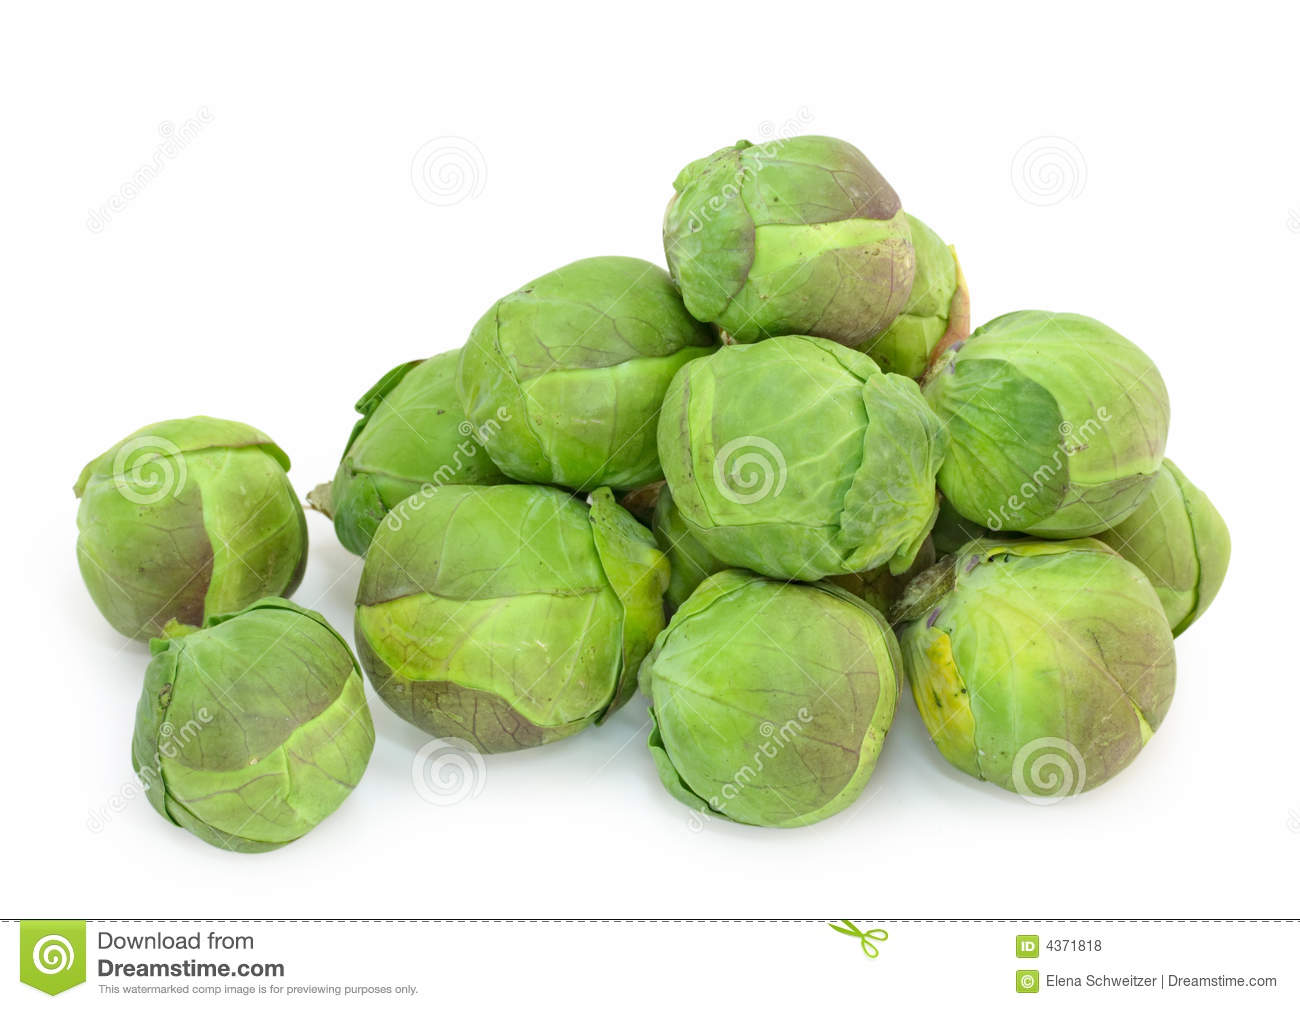 how to make sprouts at home in sprout maker